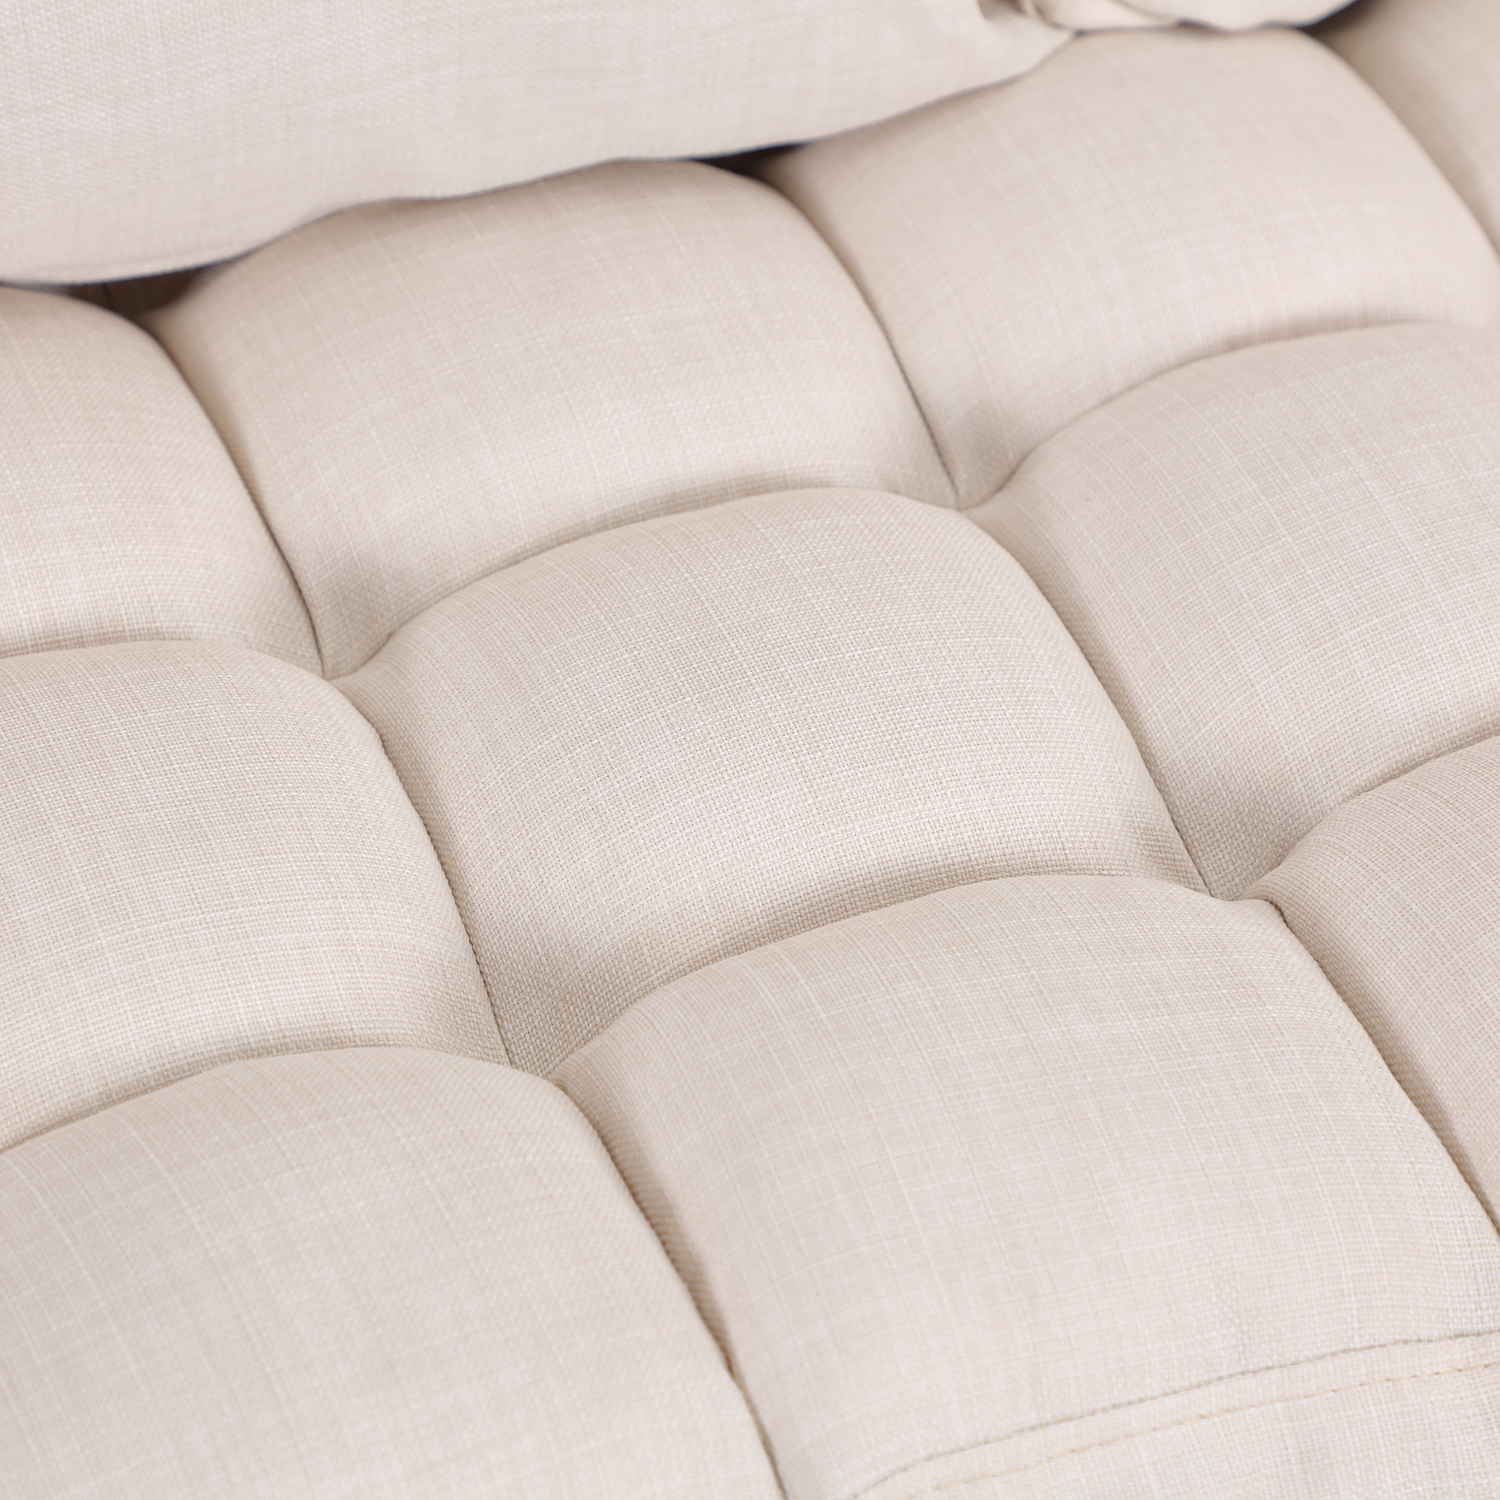 Convertible-Sofa-Bed-Sleeper-Couch-Chaise-Lounge-Chair-Adjustable-Padded-Pillow thumbnail 9